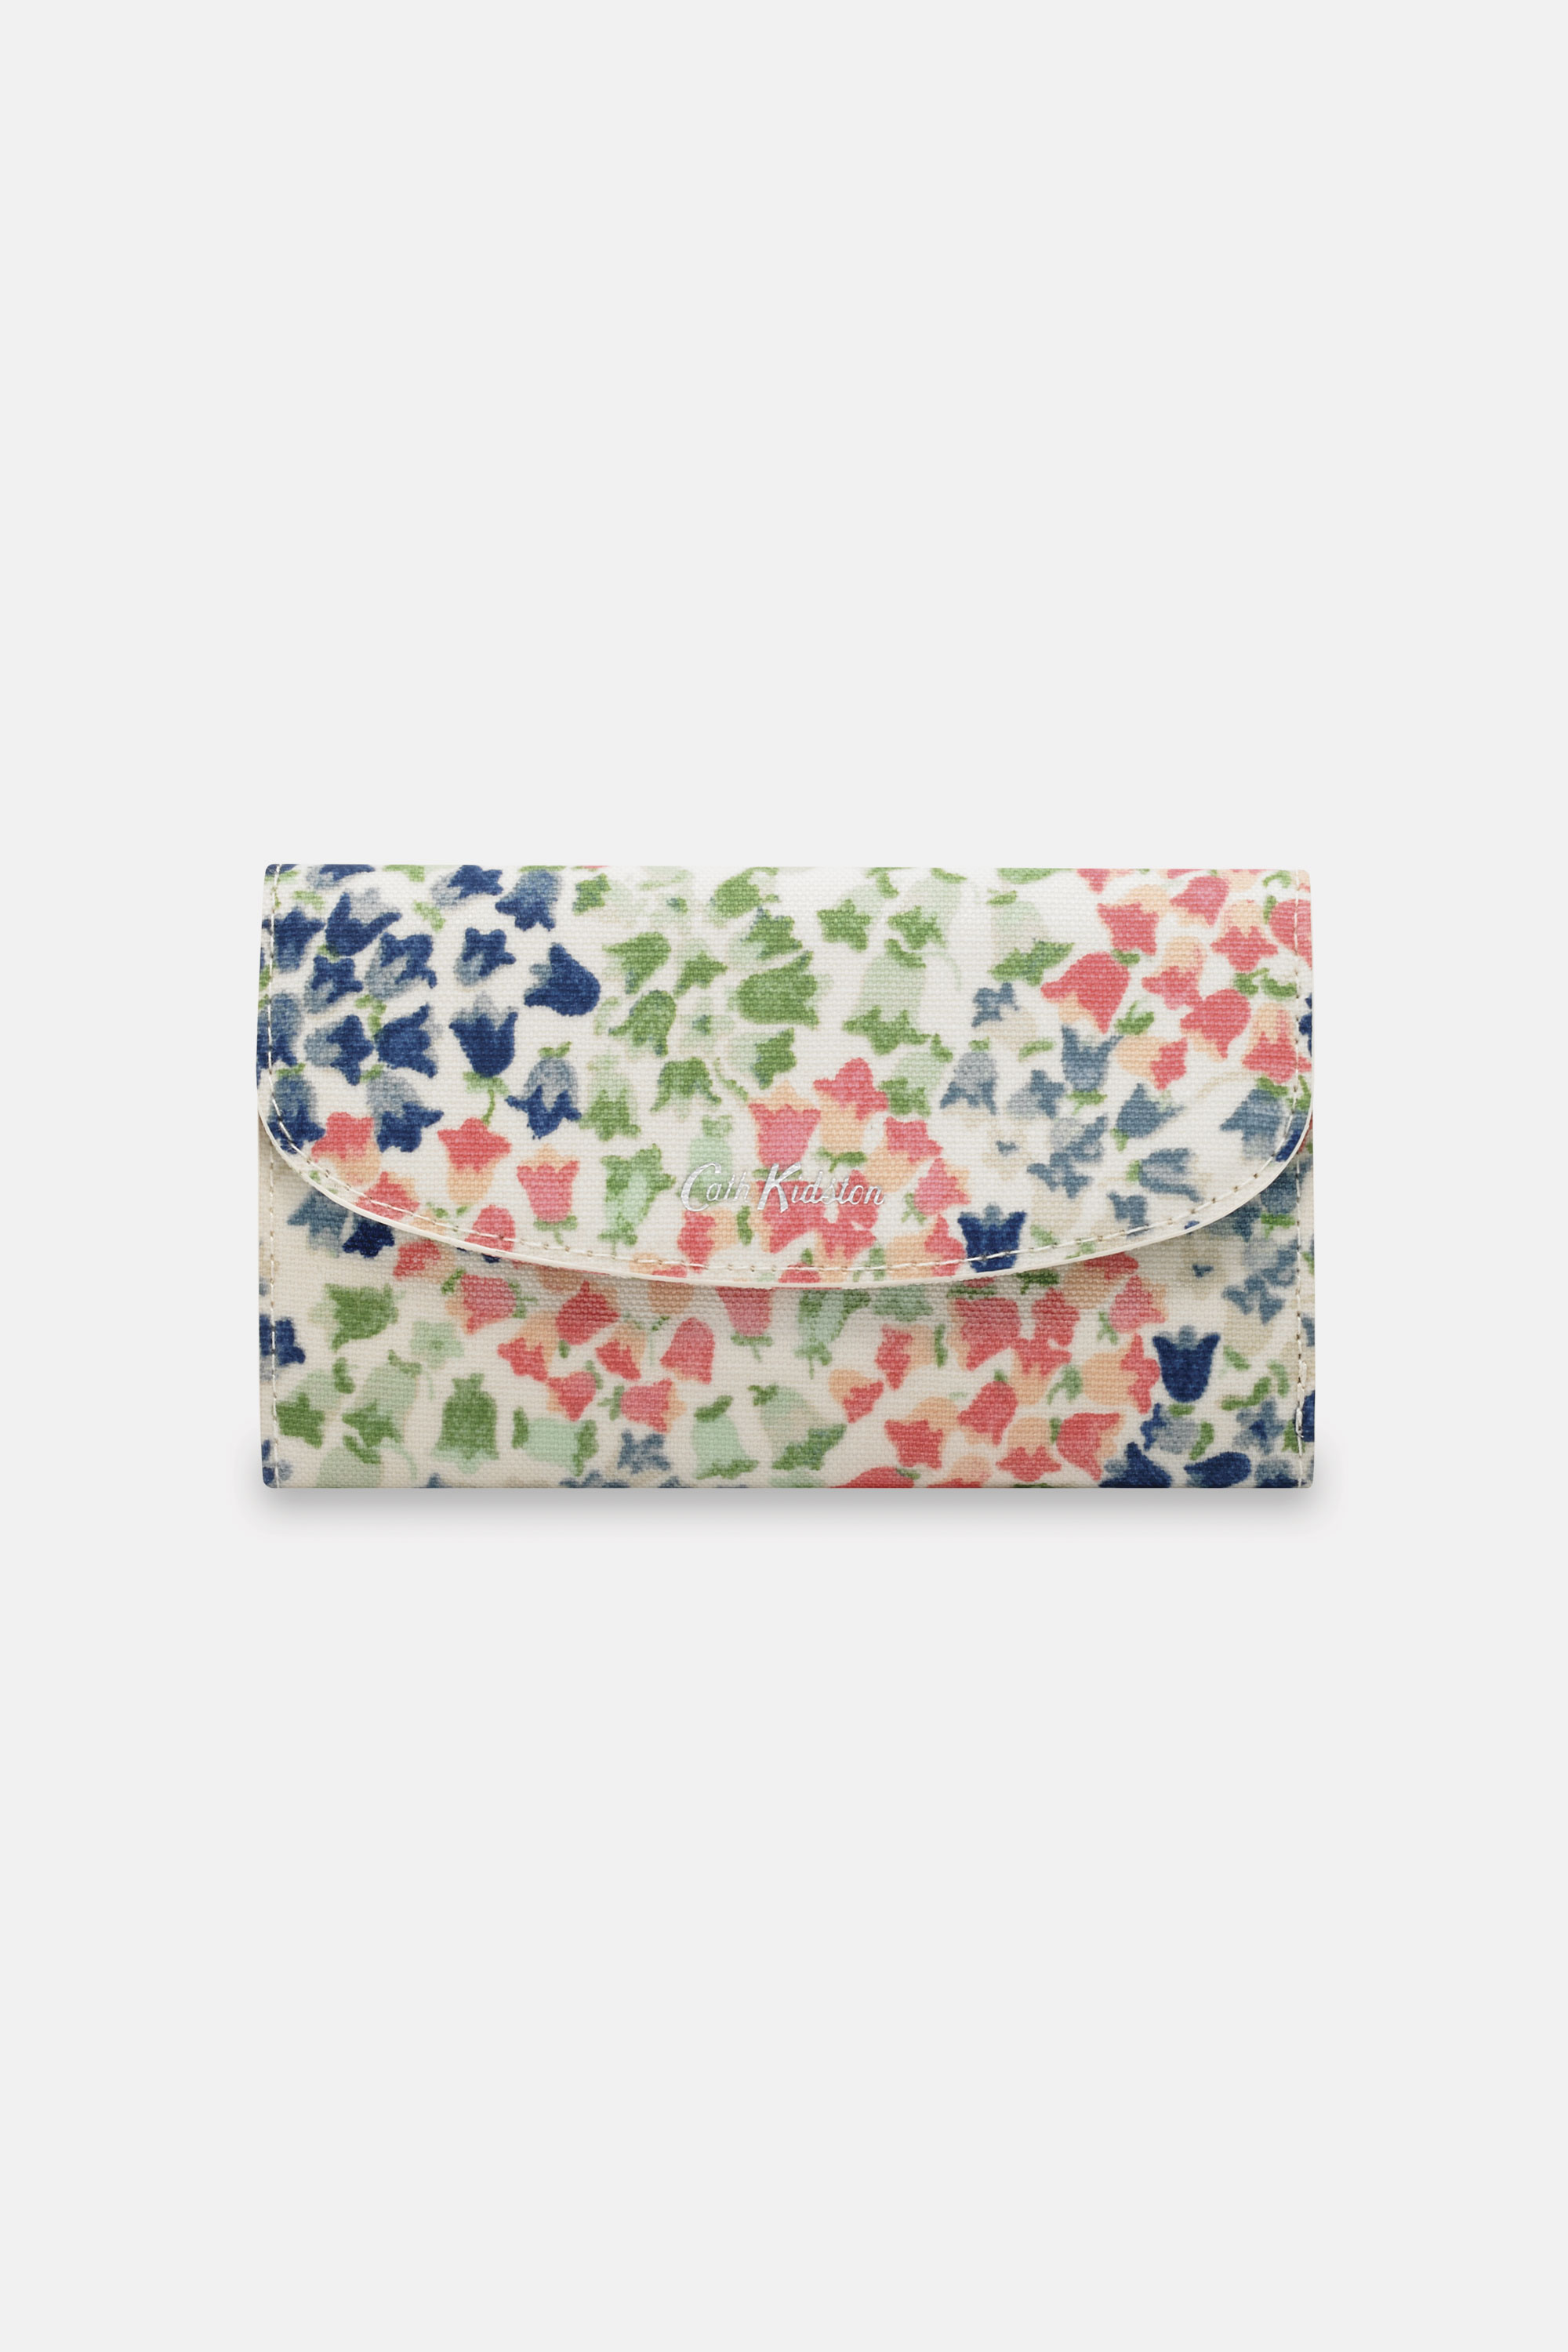 Cath Kidston Tiny Painted Bluebell Foldover Wallet in Warm Cream